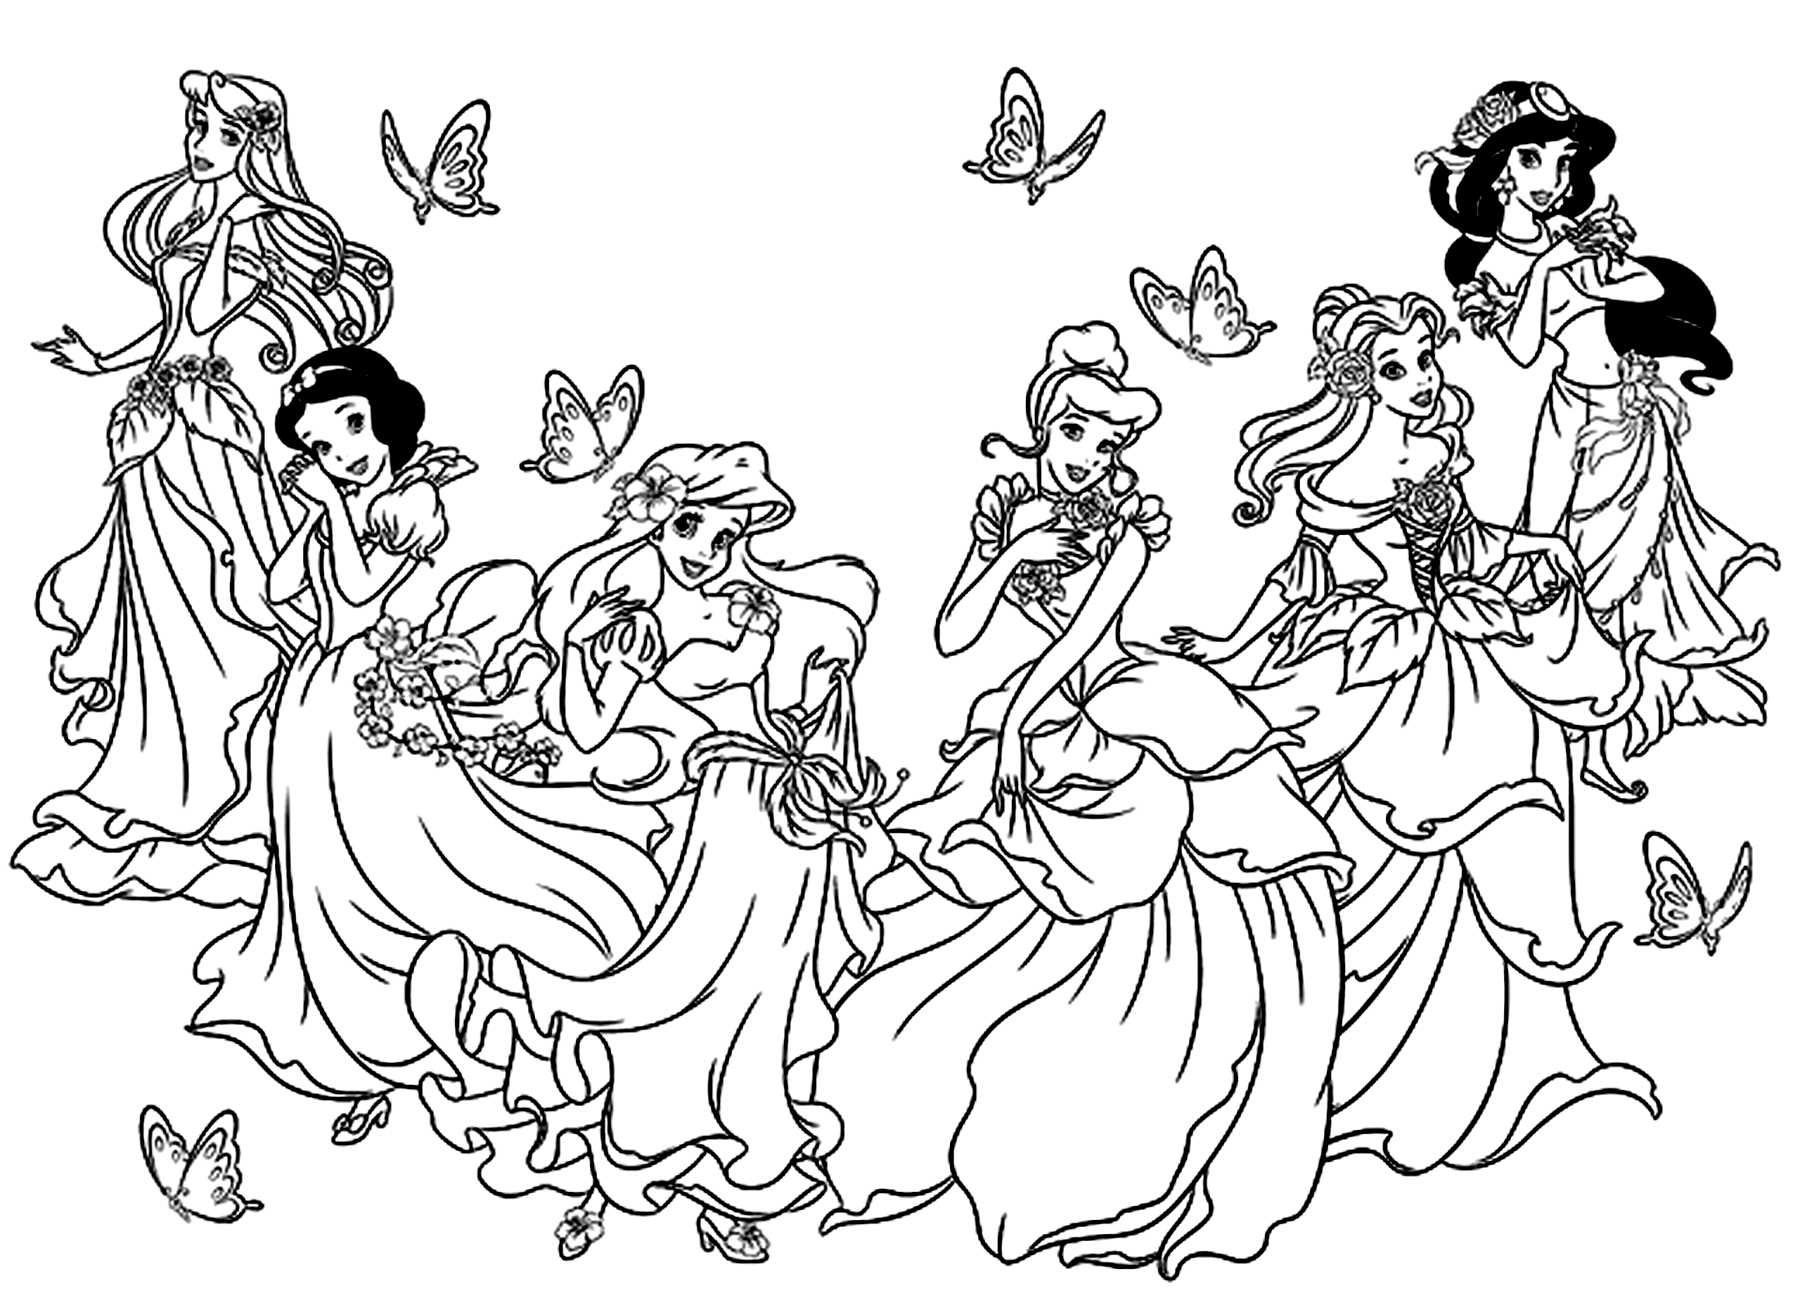 All princesses disney - Image with : Disney, Princess